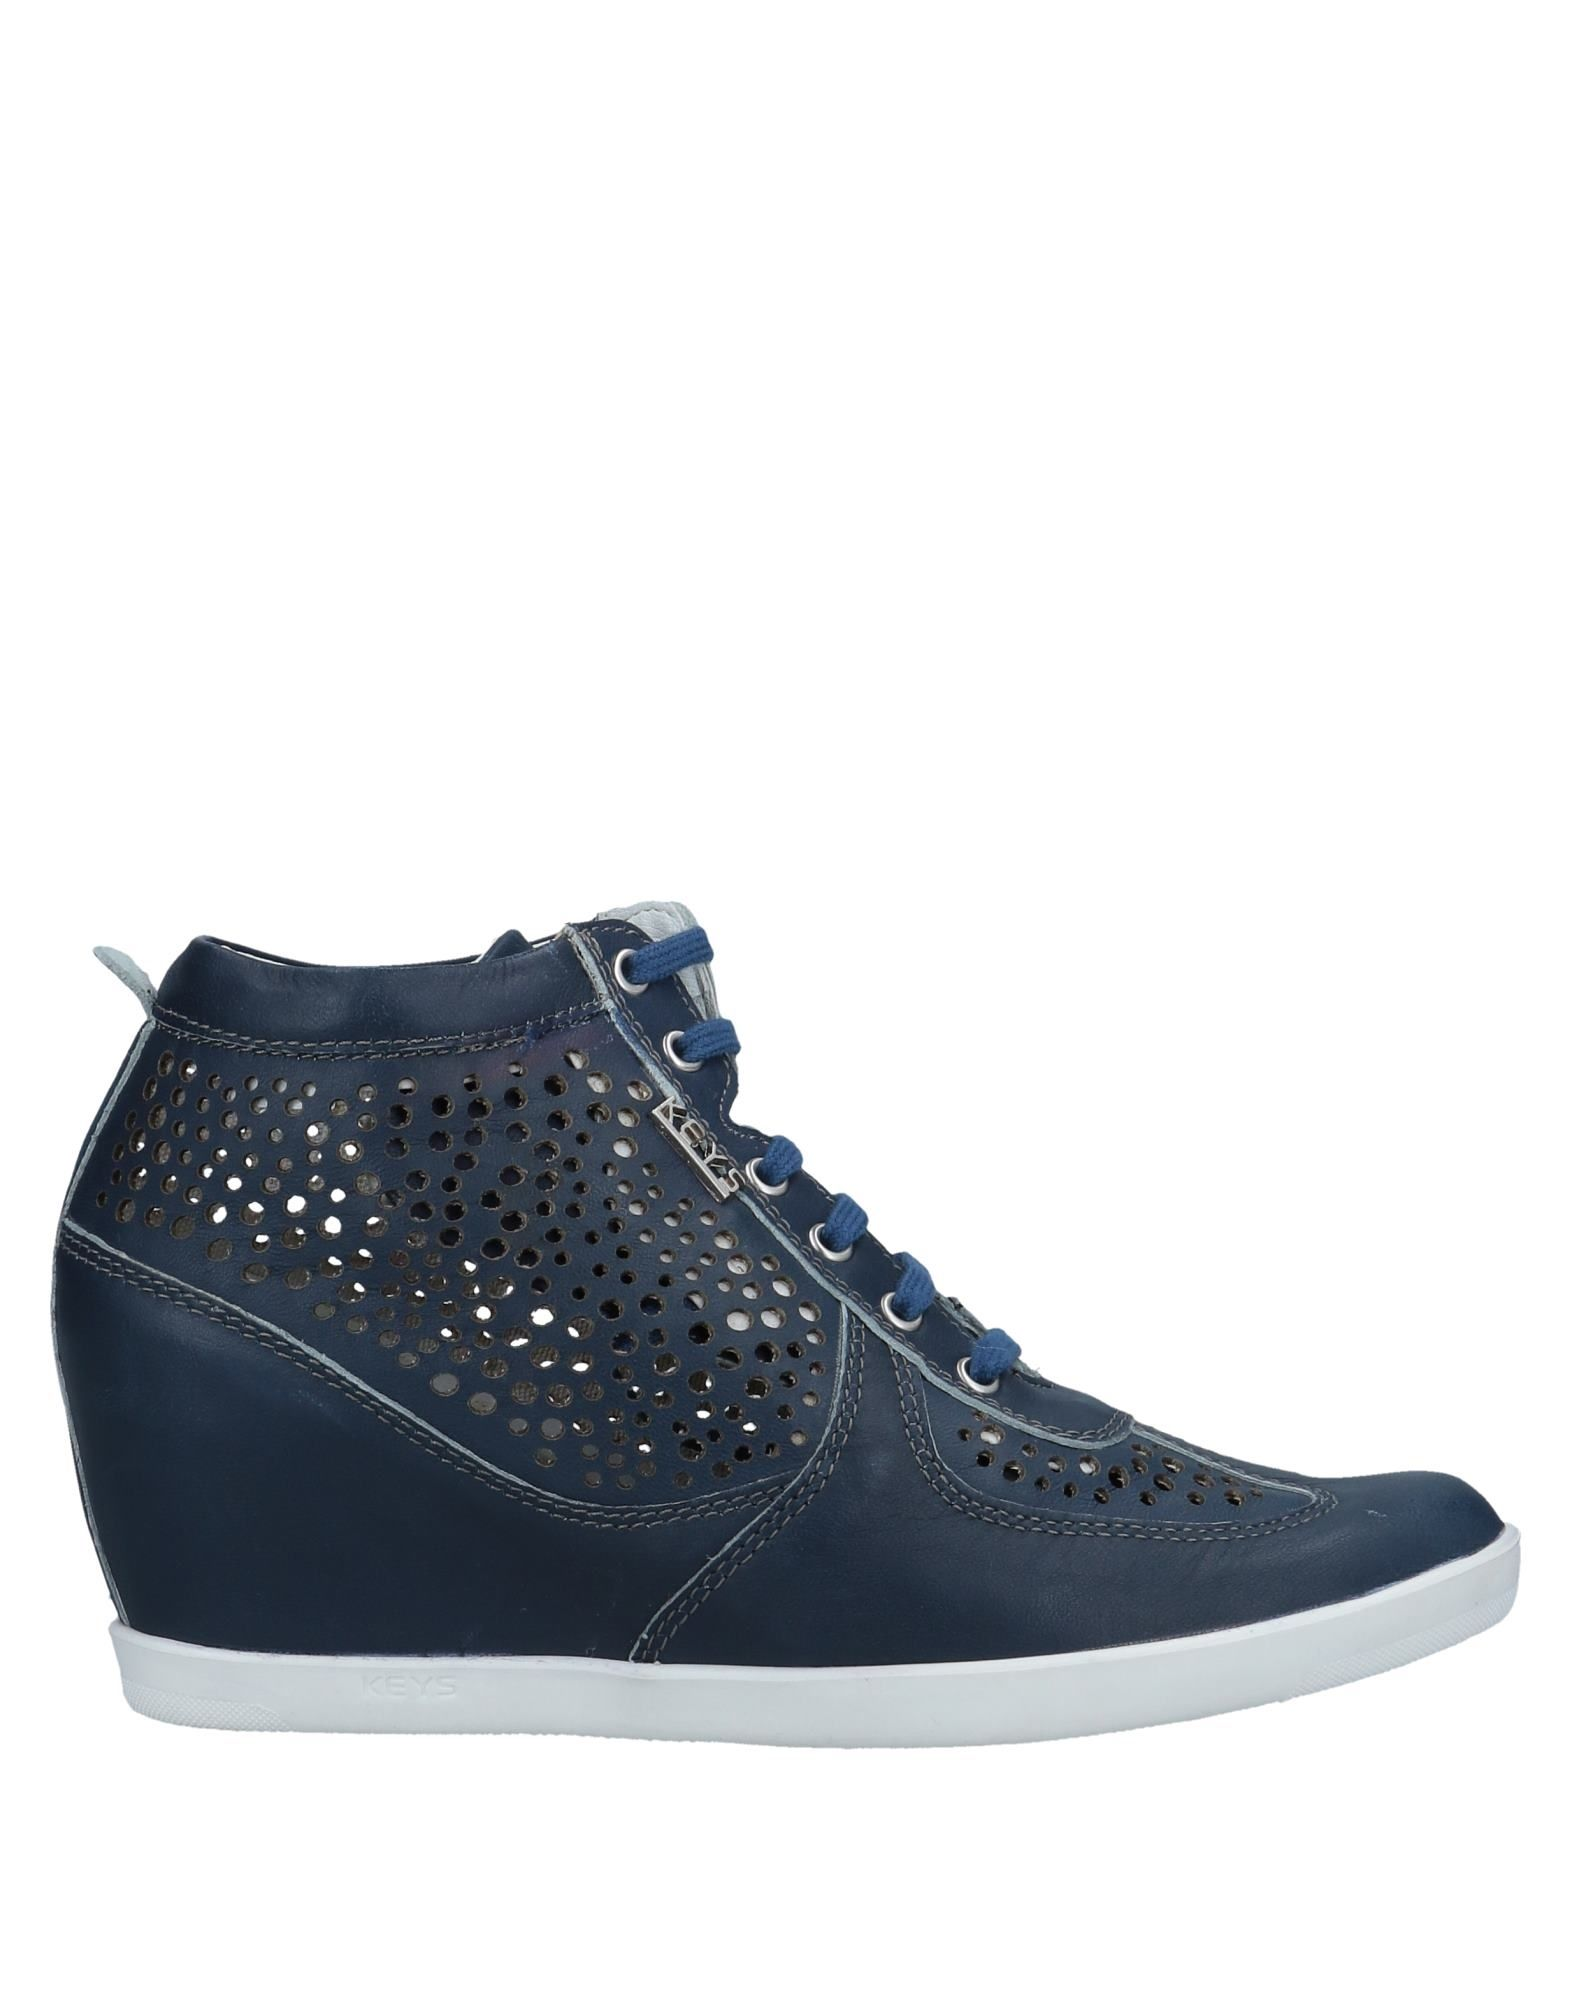 Keys on Sneakers - Women Keys Sneakers online on Keys  Australia - 11554536RT de4439